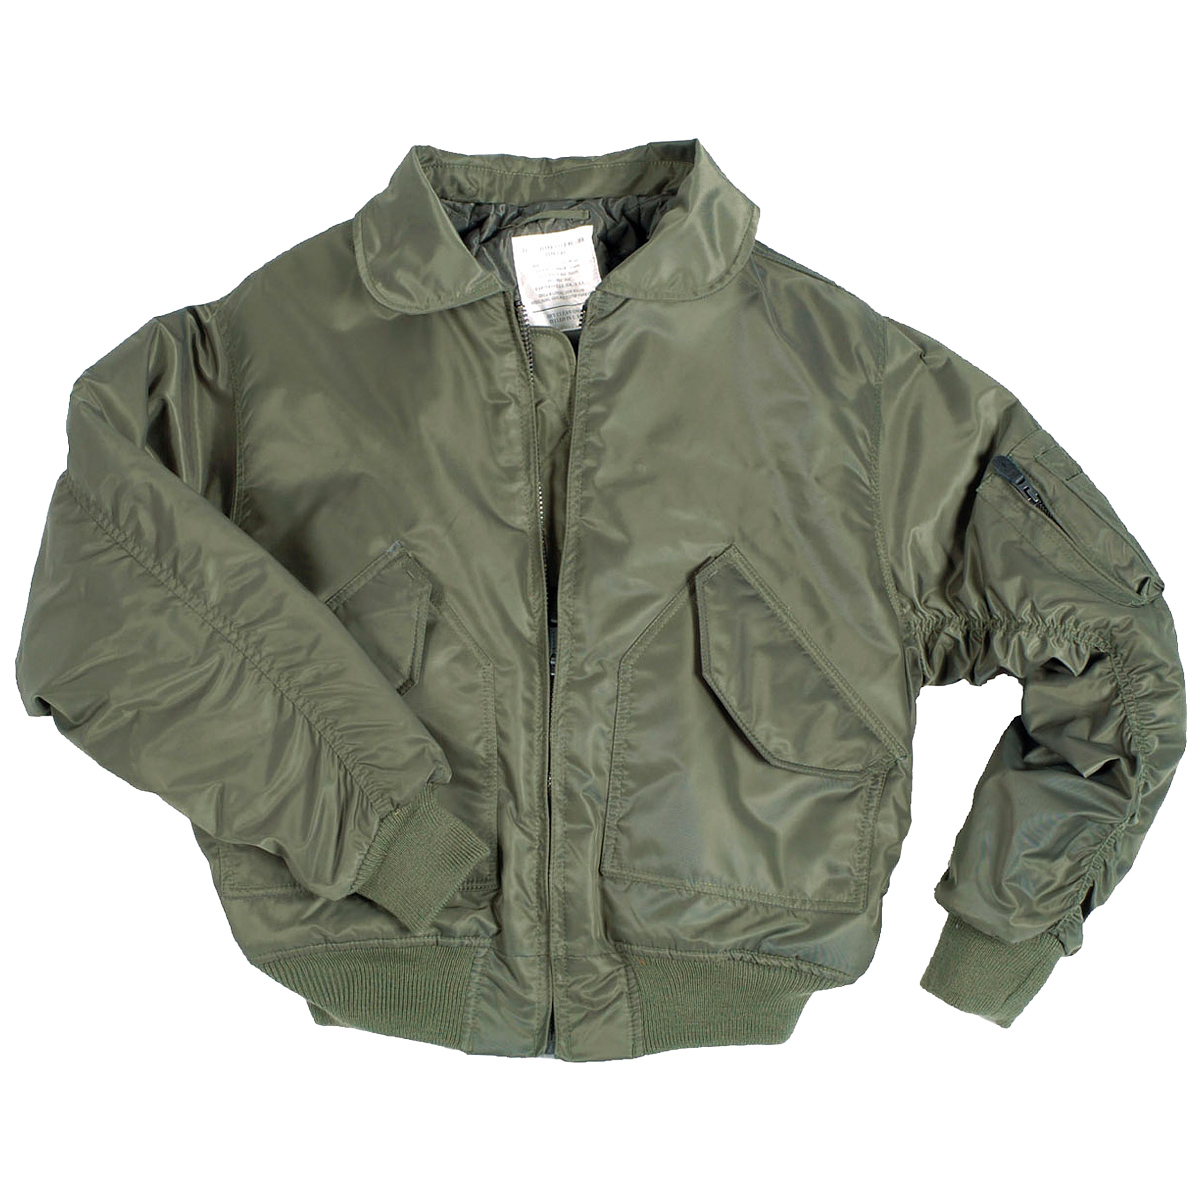 Mil-Tec US CWU Flight Jacket Basic Olive | Flight | Military 1st